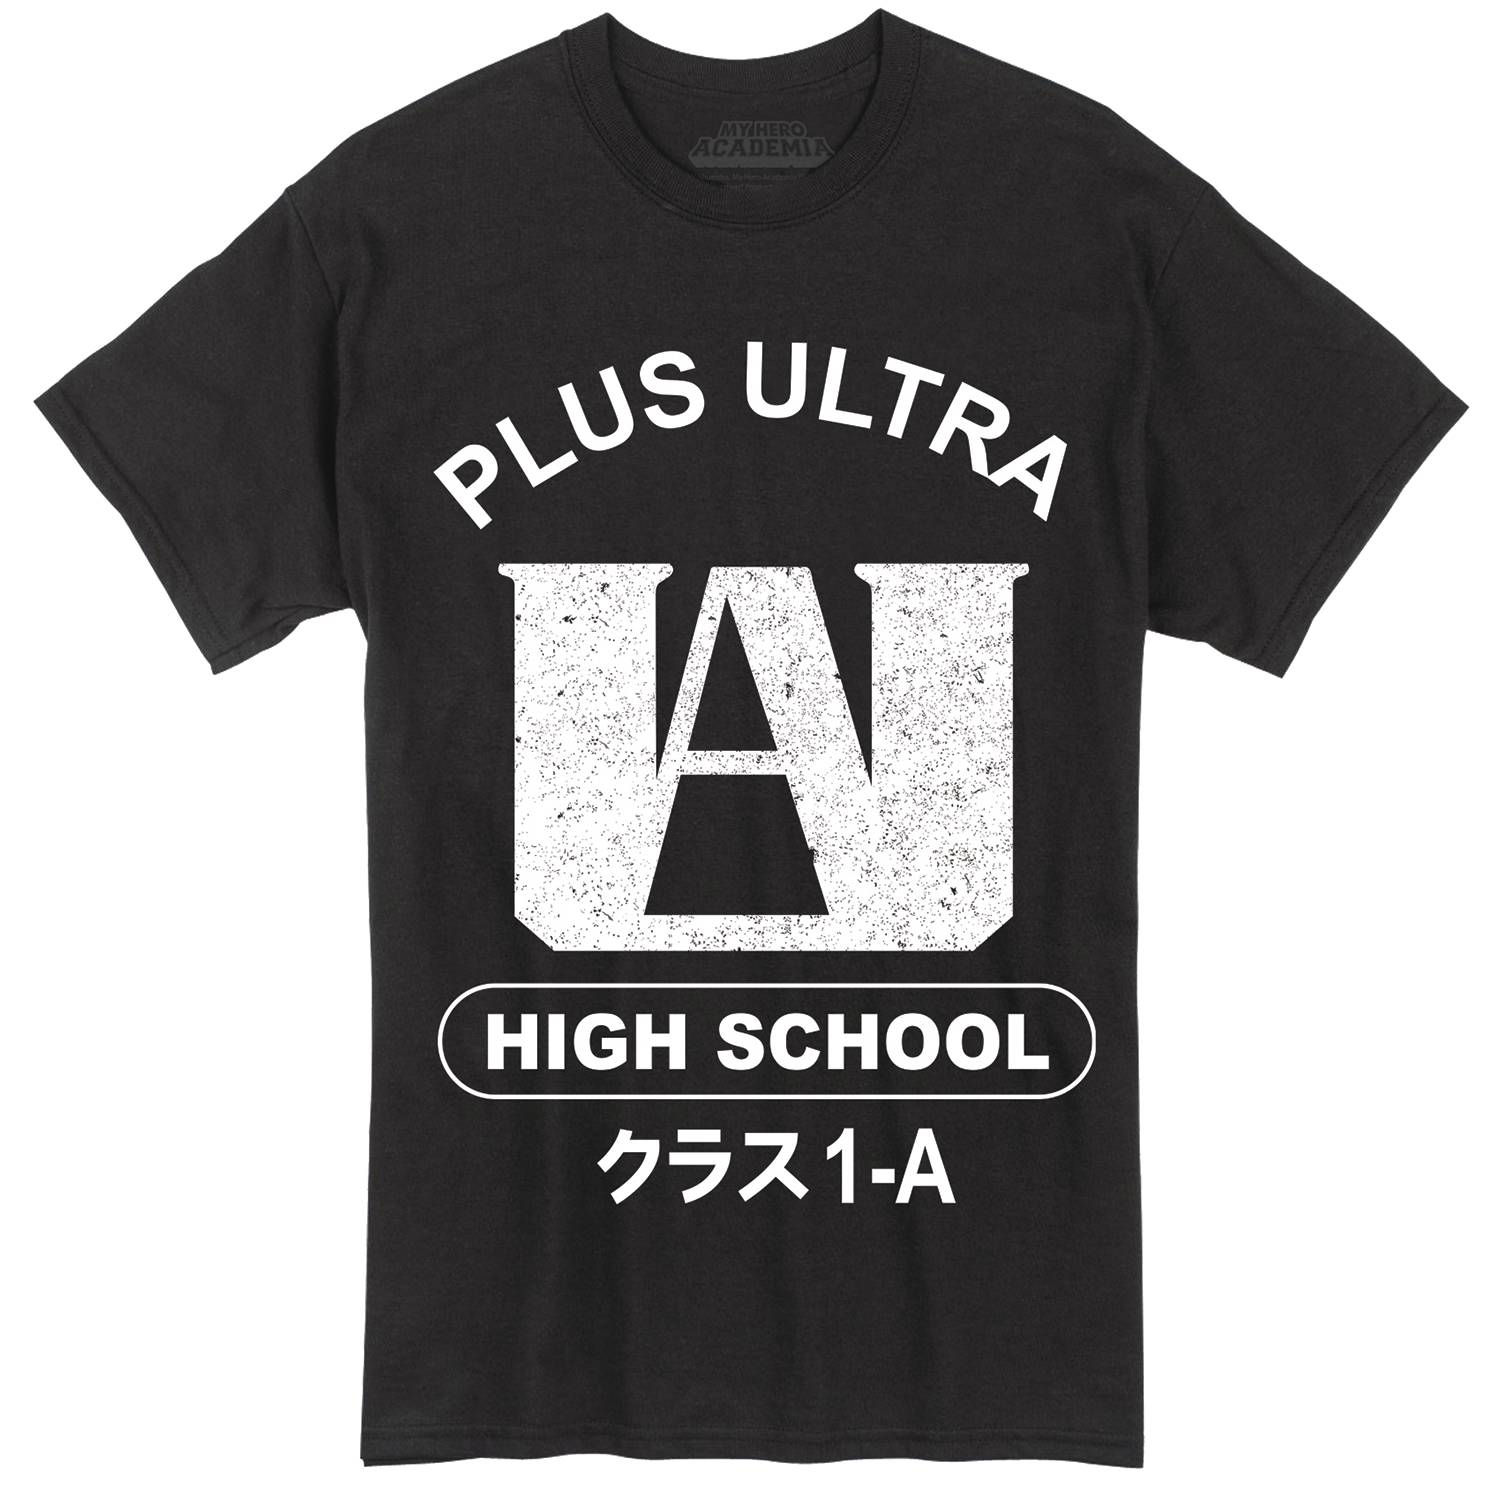 MY HERO ACADEMIA PLUS ULTRA BLK T/S XXL